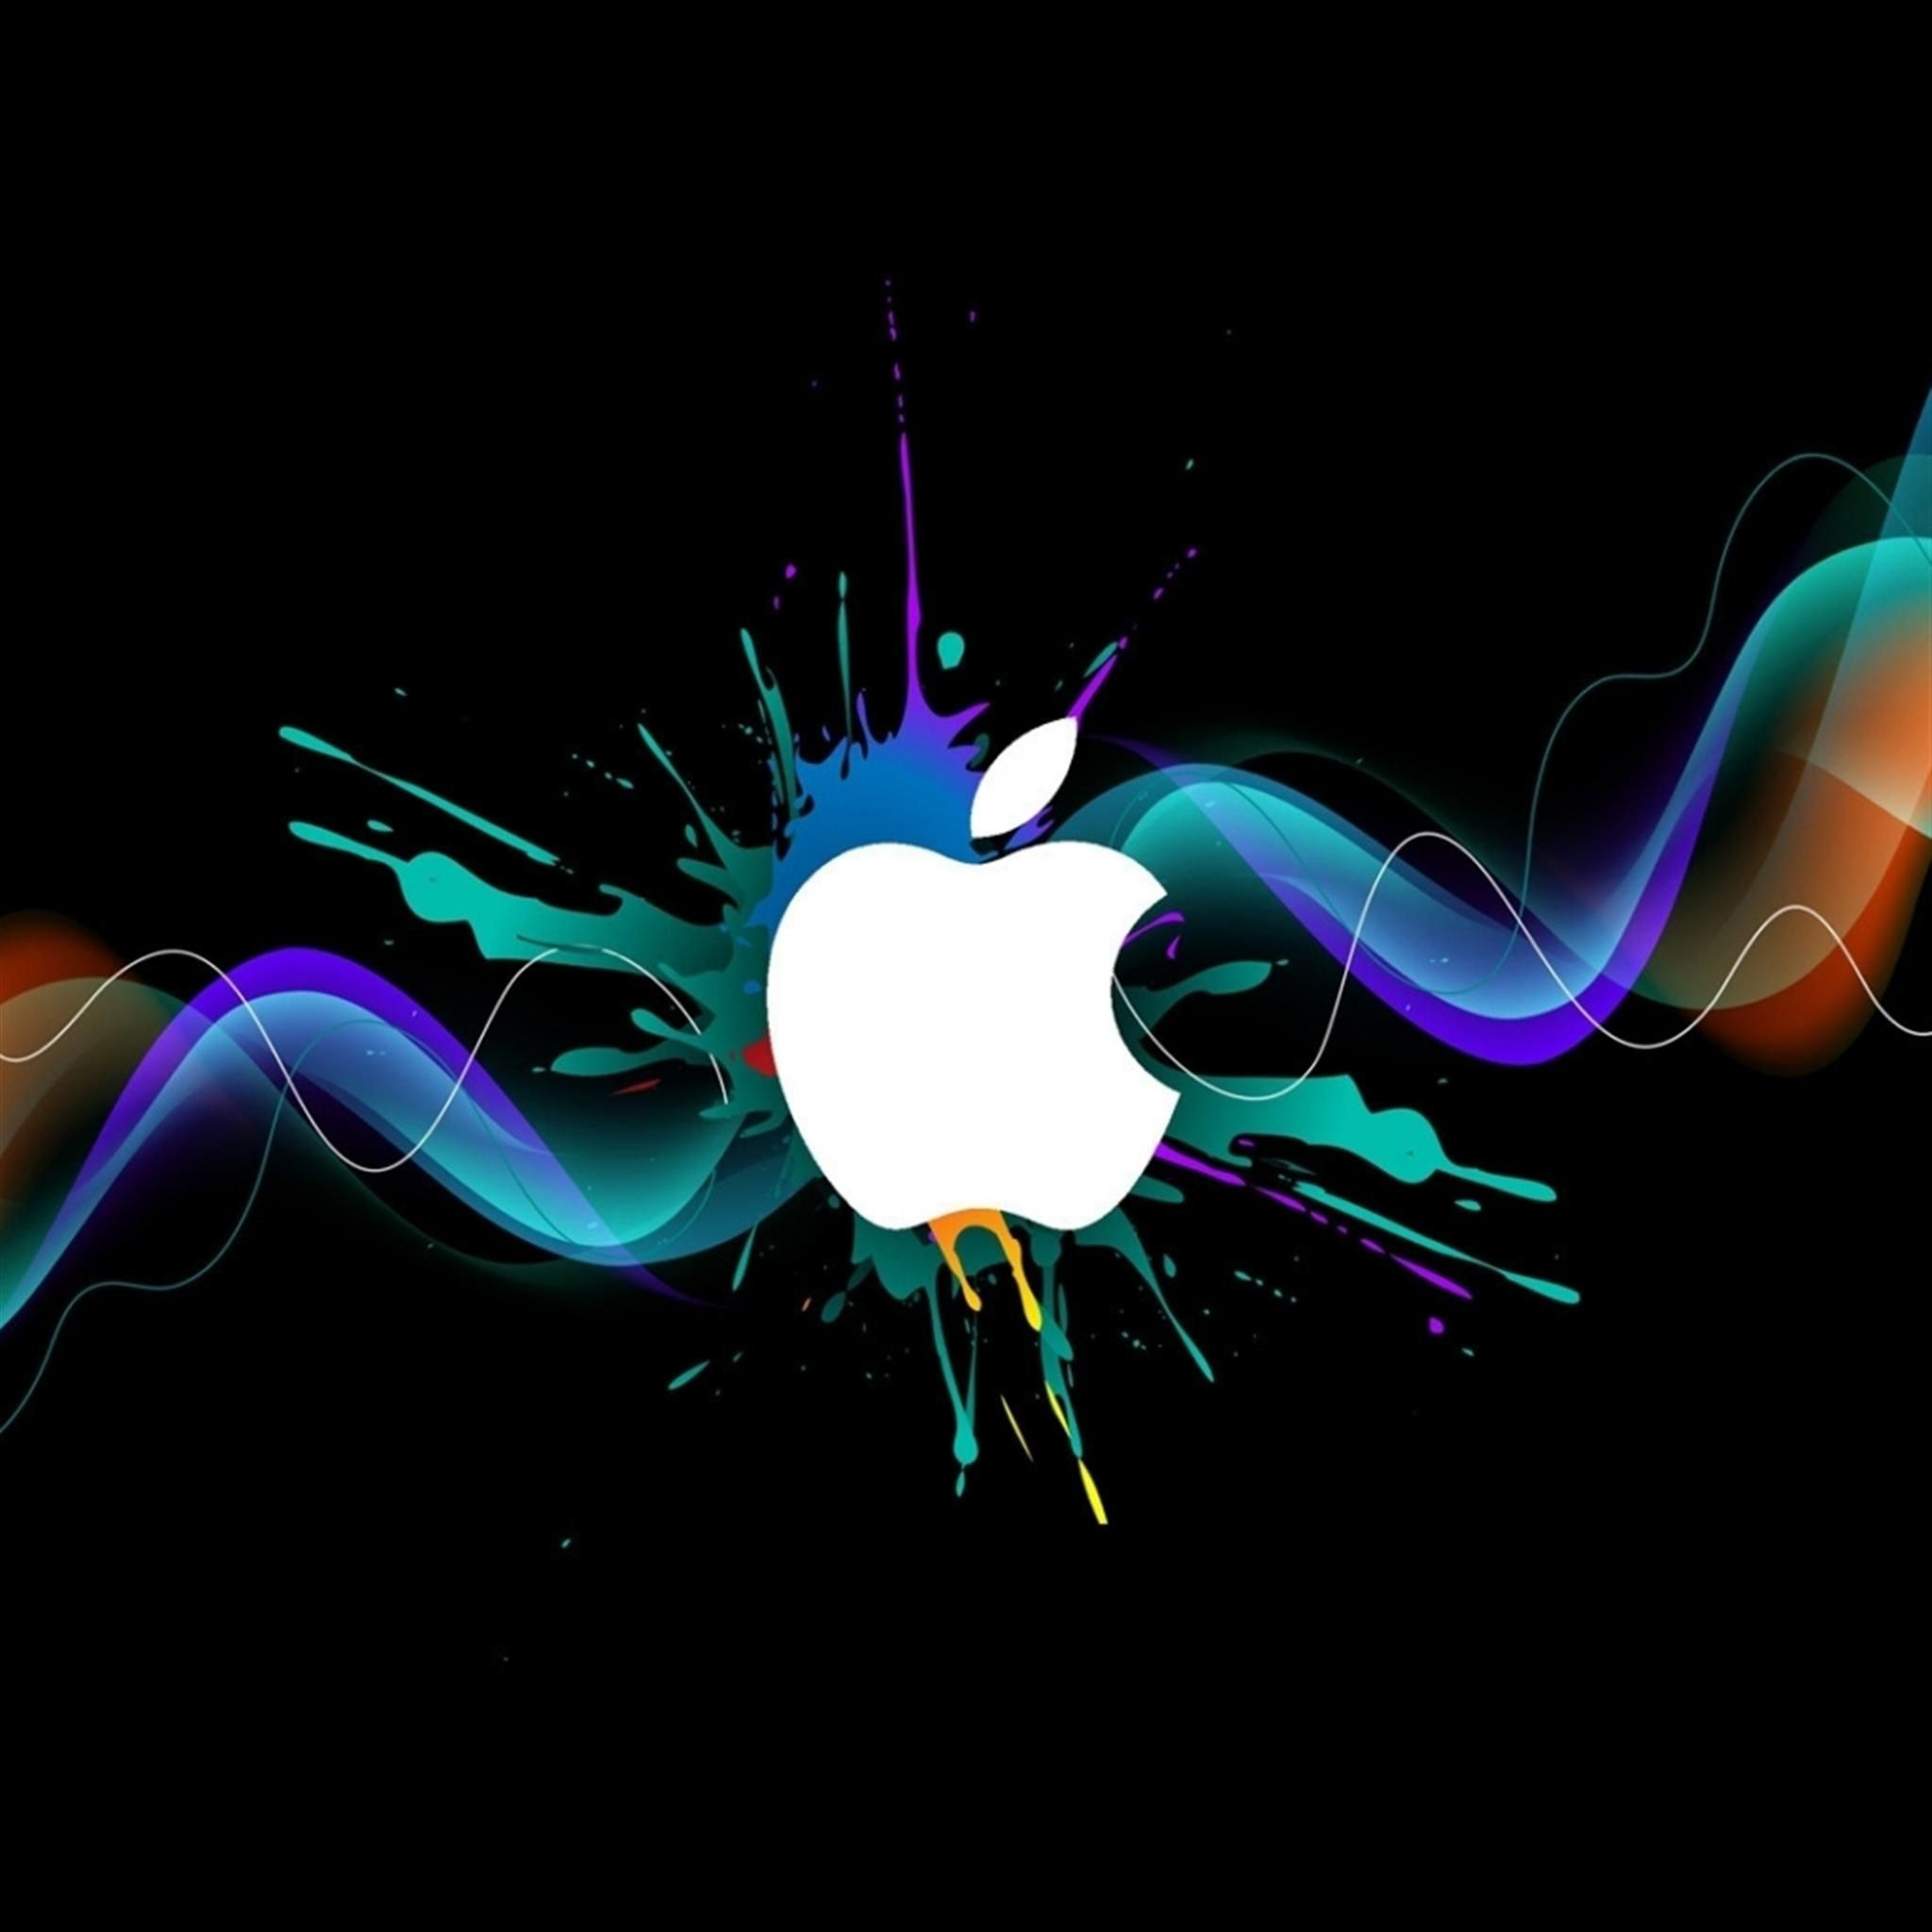 Apple iPad Air Logo Bing images Ipad pro wallpaper